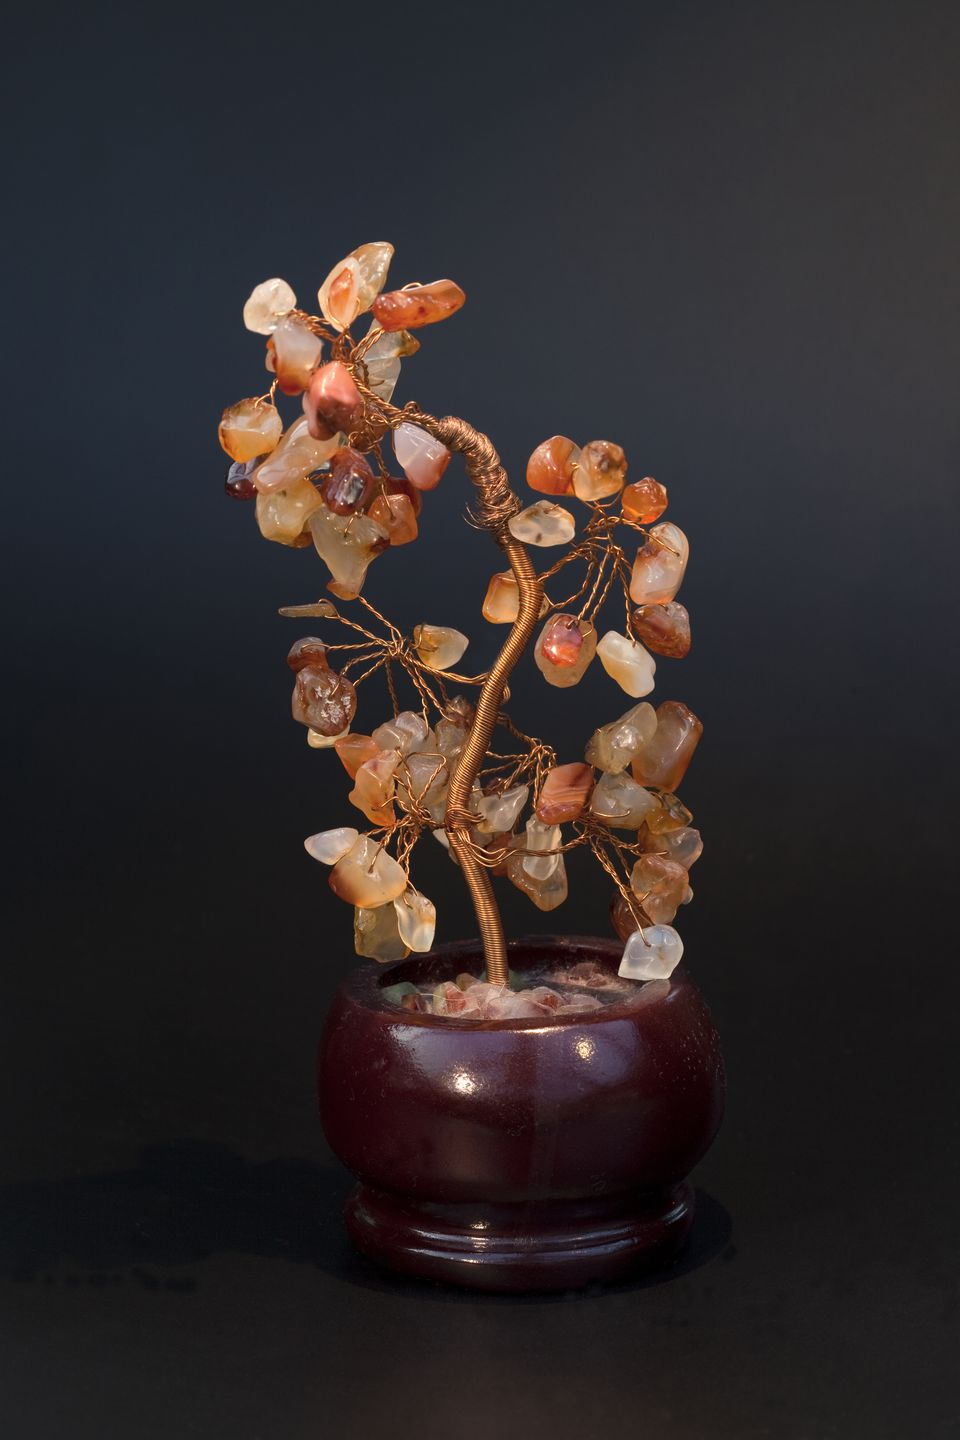 A Carnelian Crystal Tree against a grey background